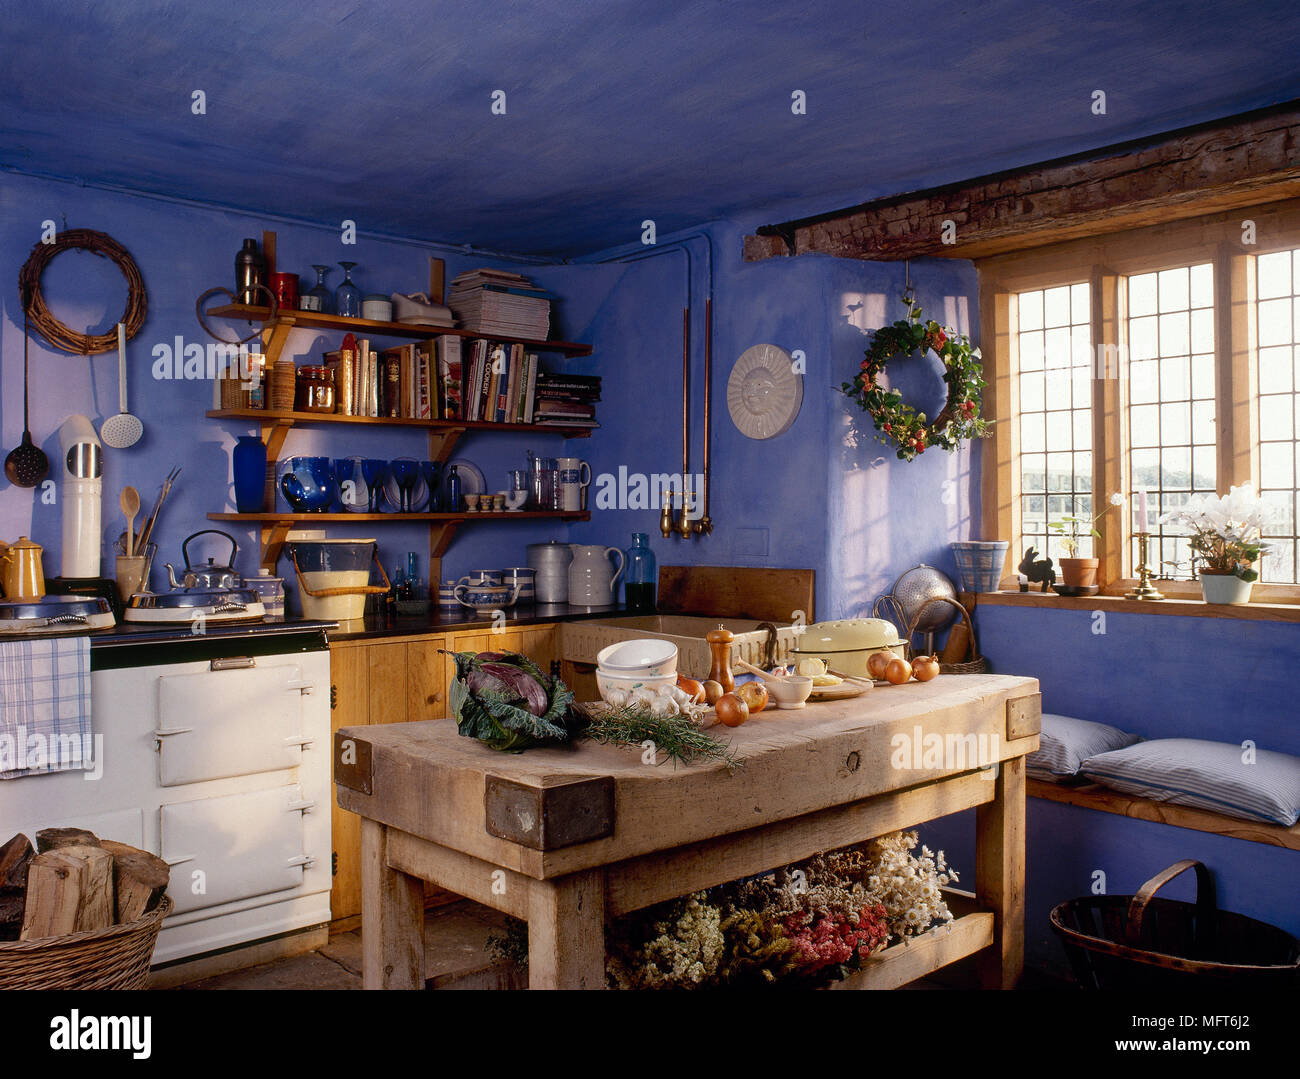 Blue Country Kitchen With Butcher Block Worktable, Beamed ...